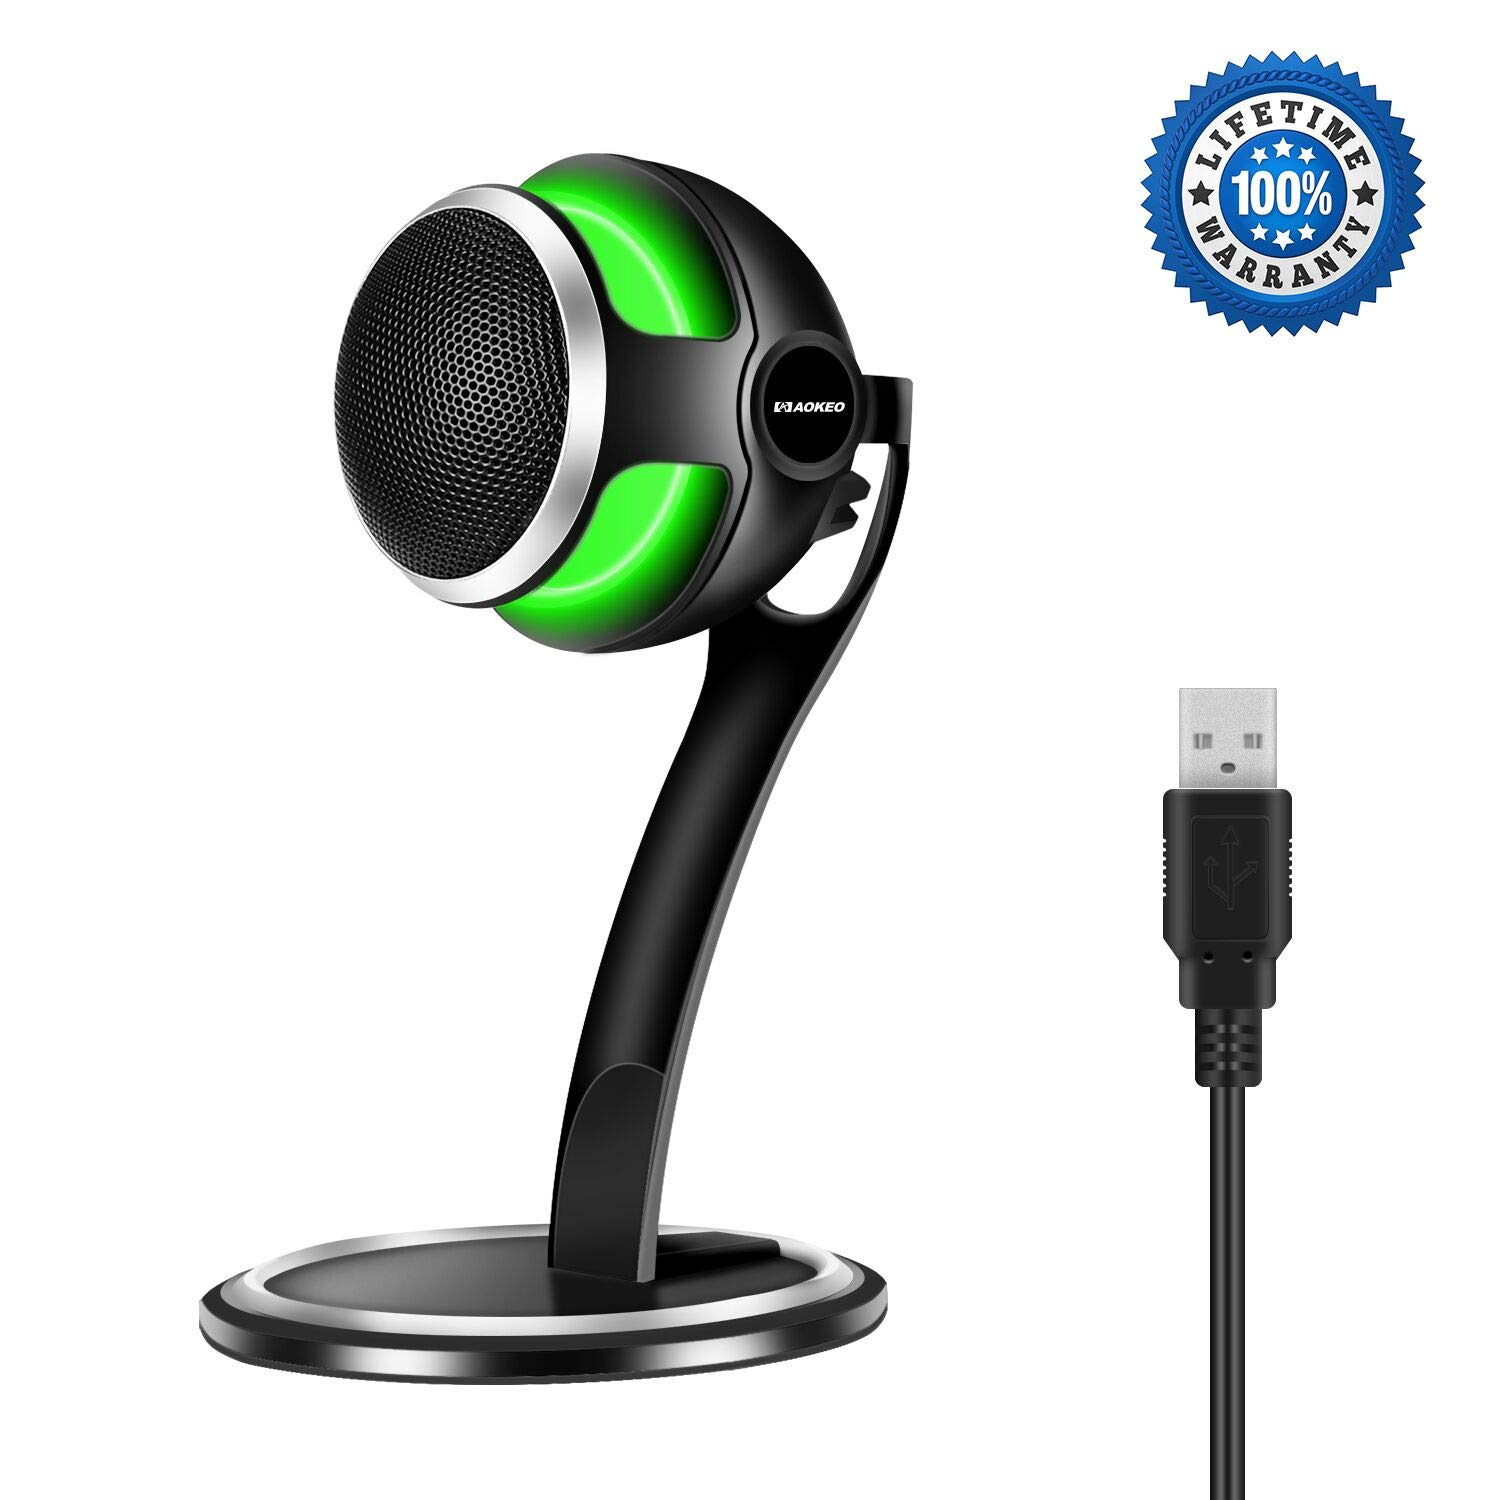 Computer Microphone,Aokeo Storm Professional USB Studio Condenser Games Microphone for Chatting/Skype/YouTube/Recording/Gaming/Podcasting for iMac PC Laptop MacBook Playstation